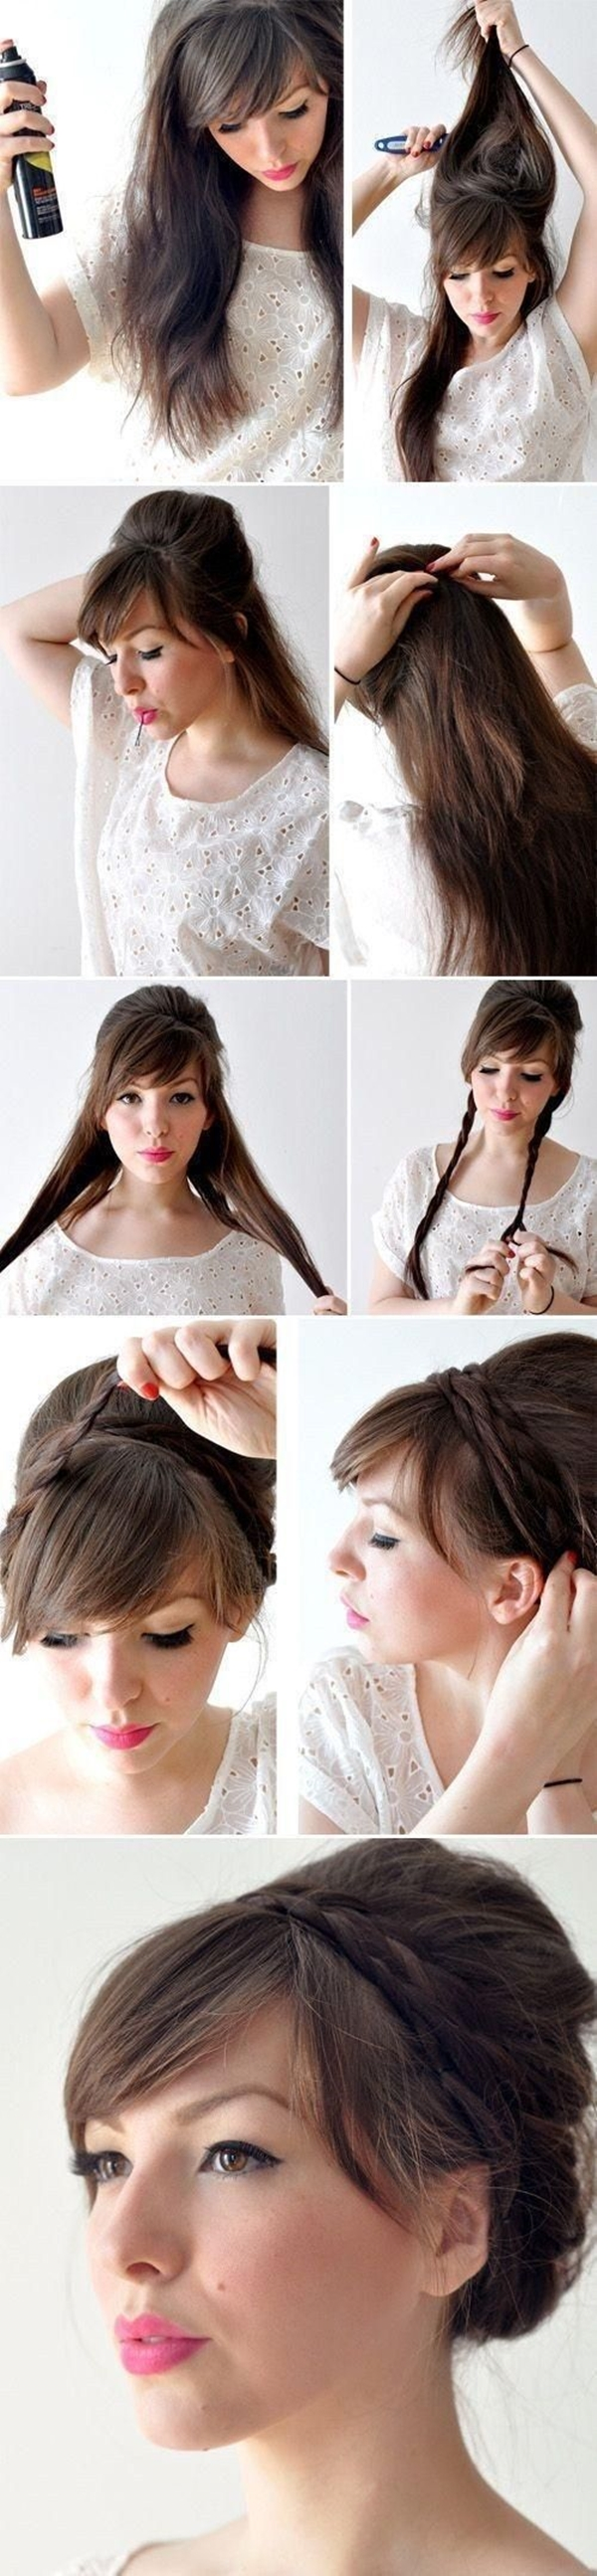 Simple and Sexy Hairstyle for Teen Girls -38